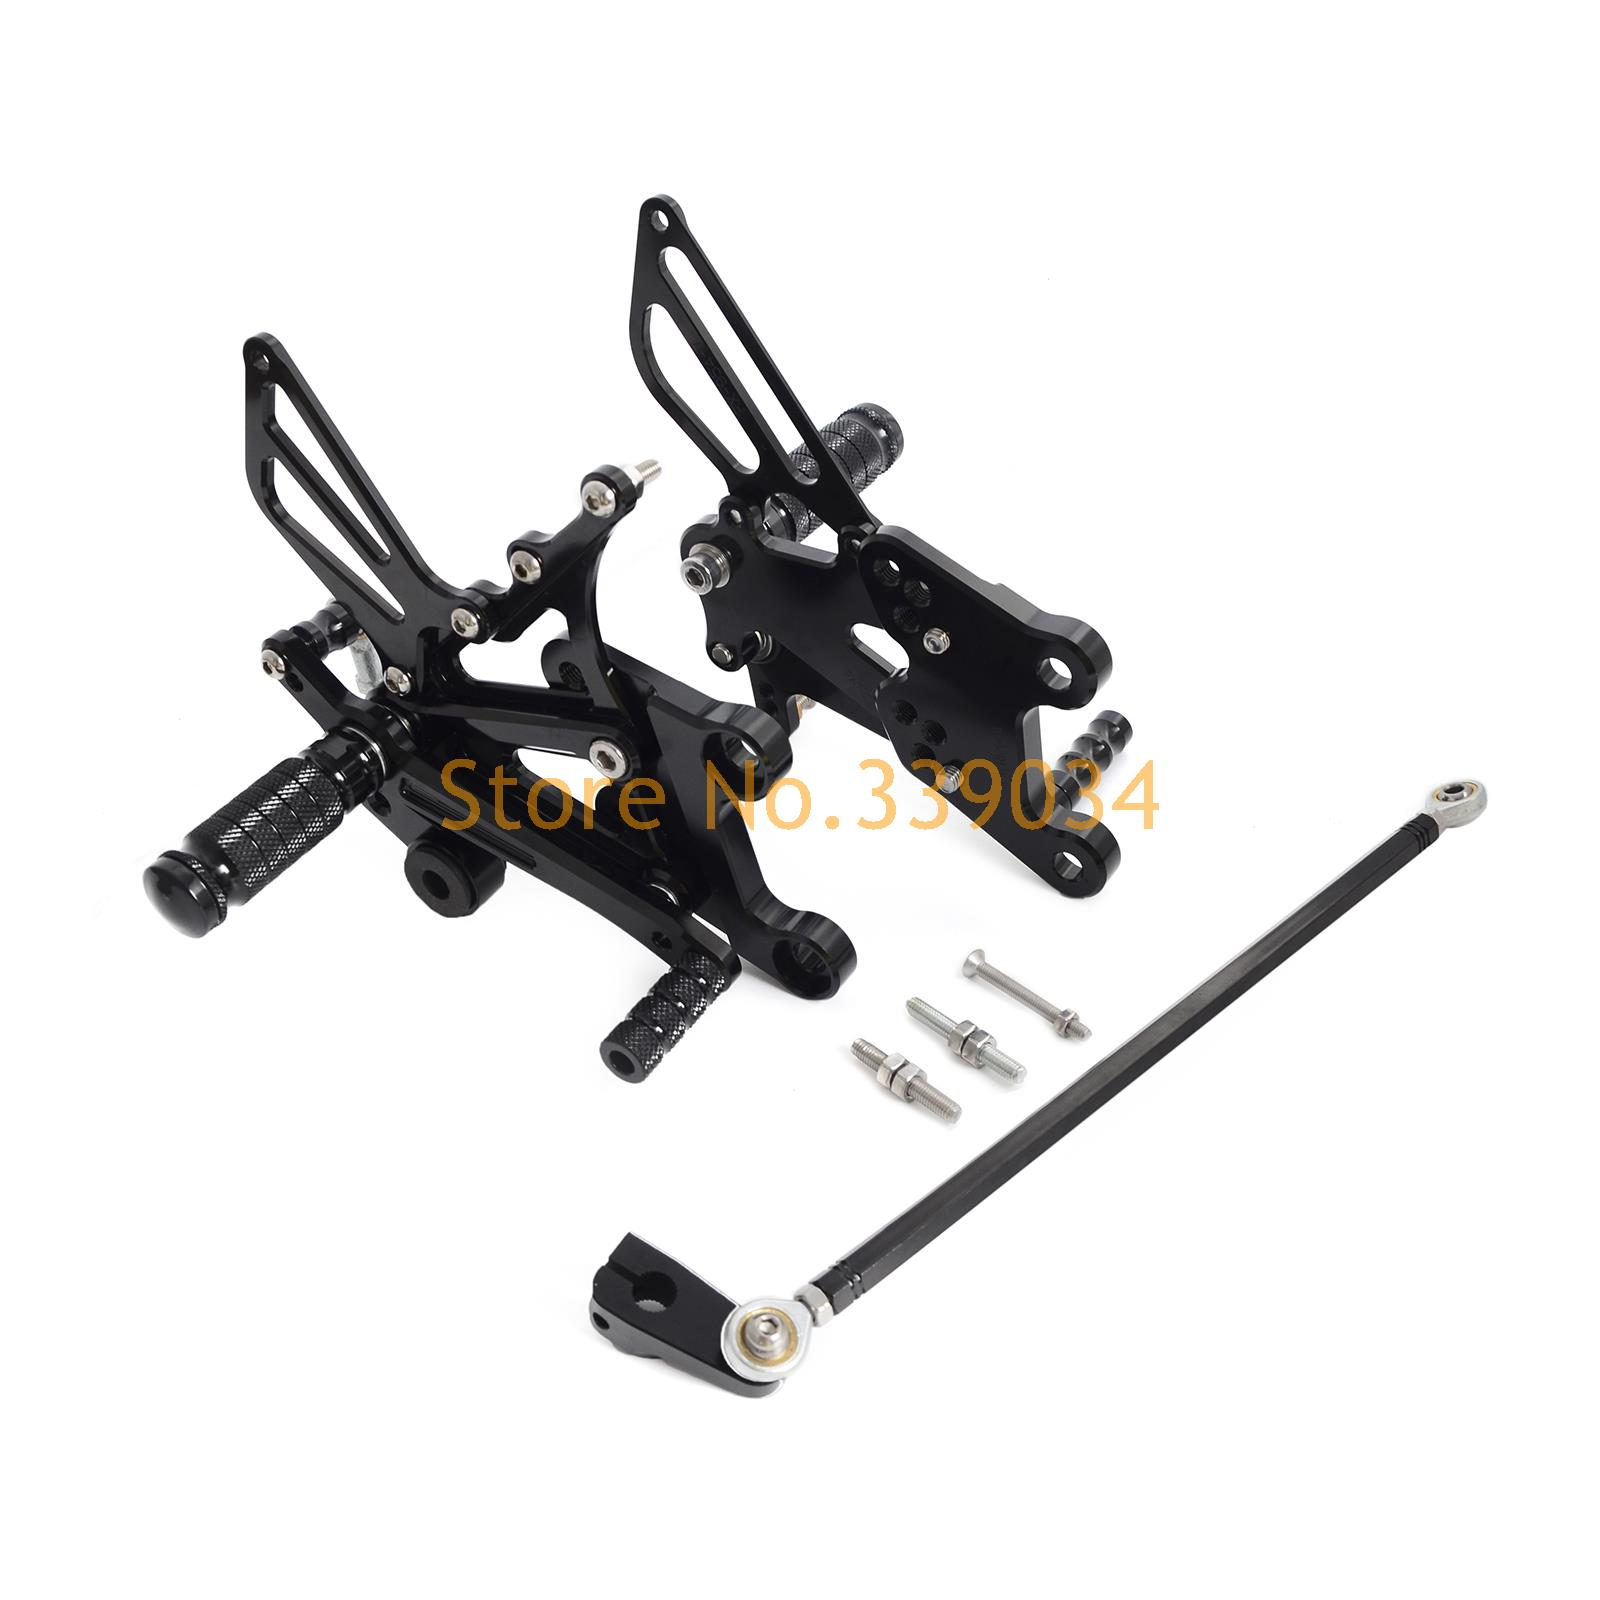 Racing Adjustable Rearsets Foot Rest Peg Rear Set For For Yamaha  YZF-R125 2008-2013 Black Gold SliverRacing Adjustable Rearsets Foot Rest Peg Rear Set For For Yamaha  YZF-R125 2008-2013 Black Gold Sliver